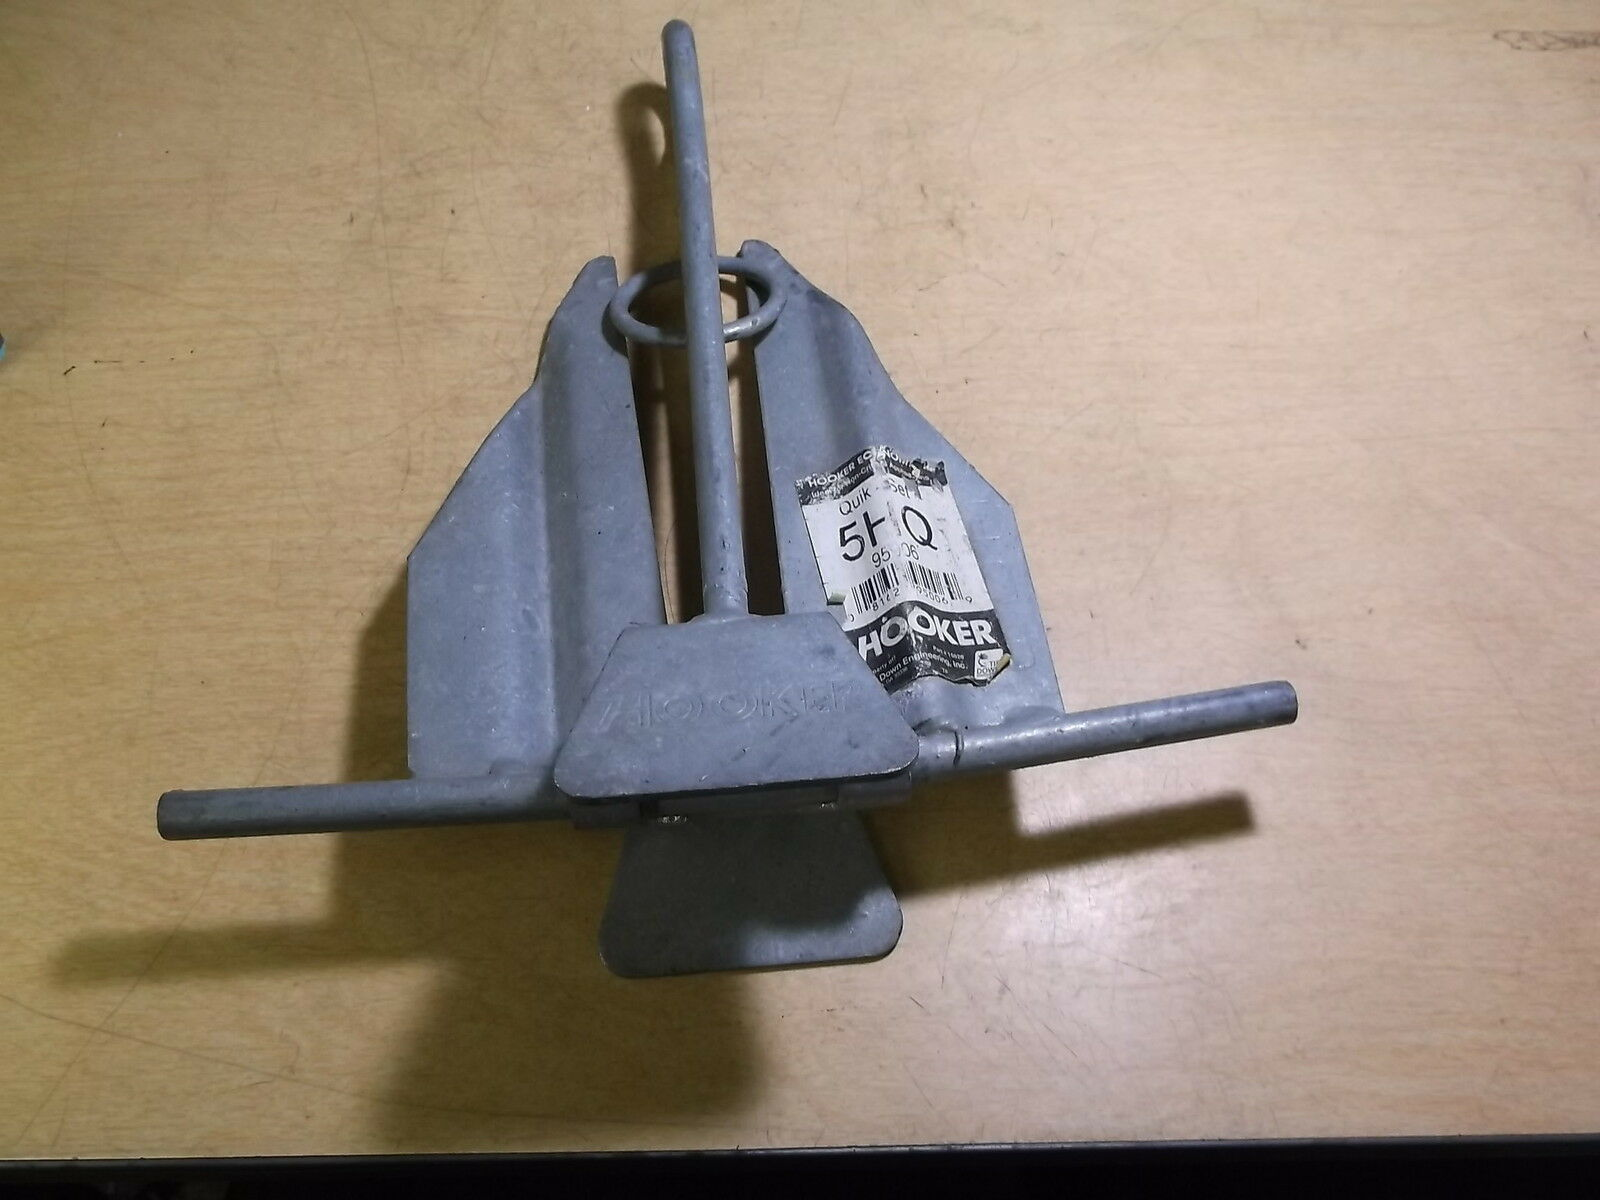 NEW Down Engineering Hooker 5HQ Tie Down Anchor 15806 95006 *FREE SHIPPING*